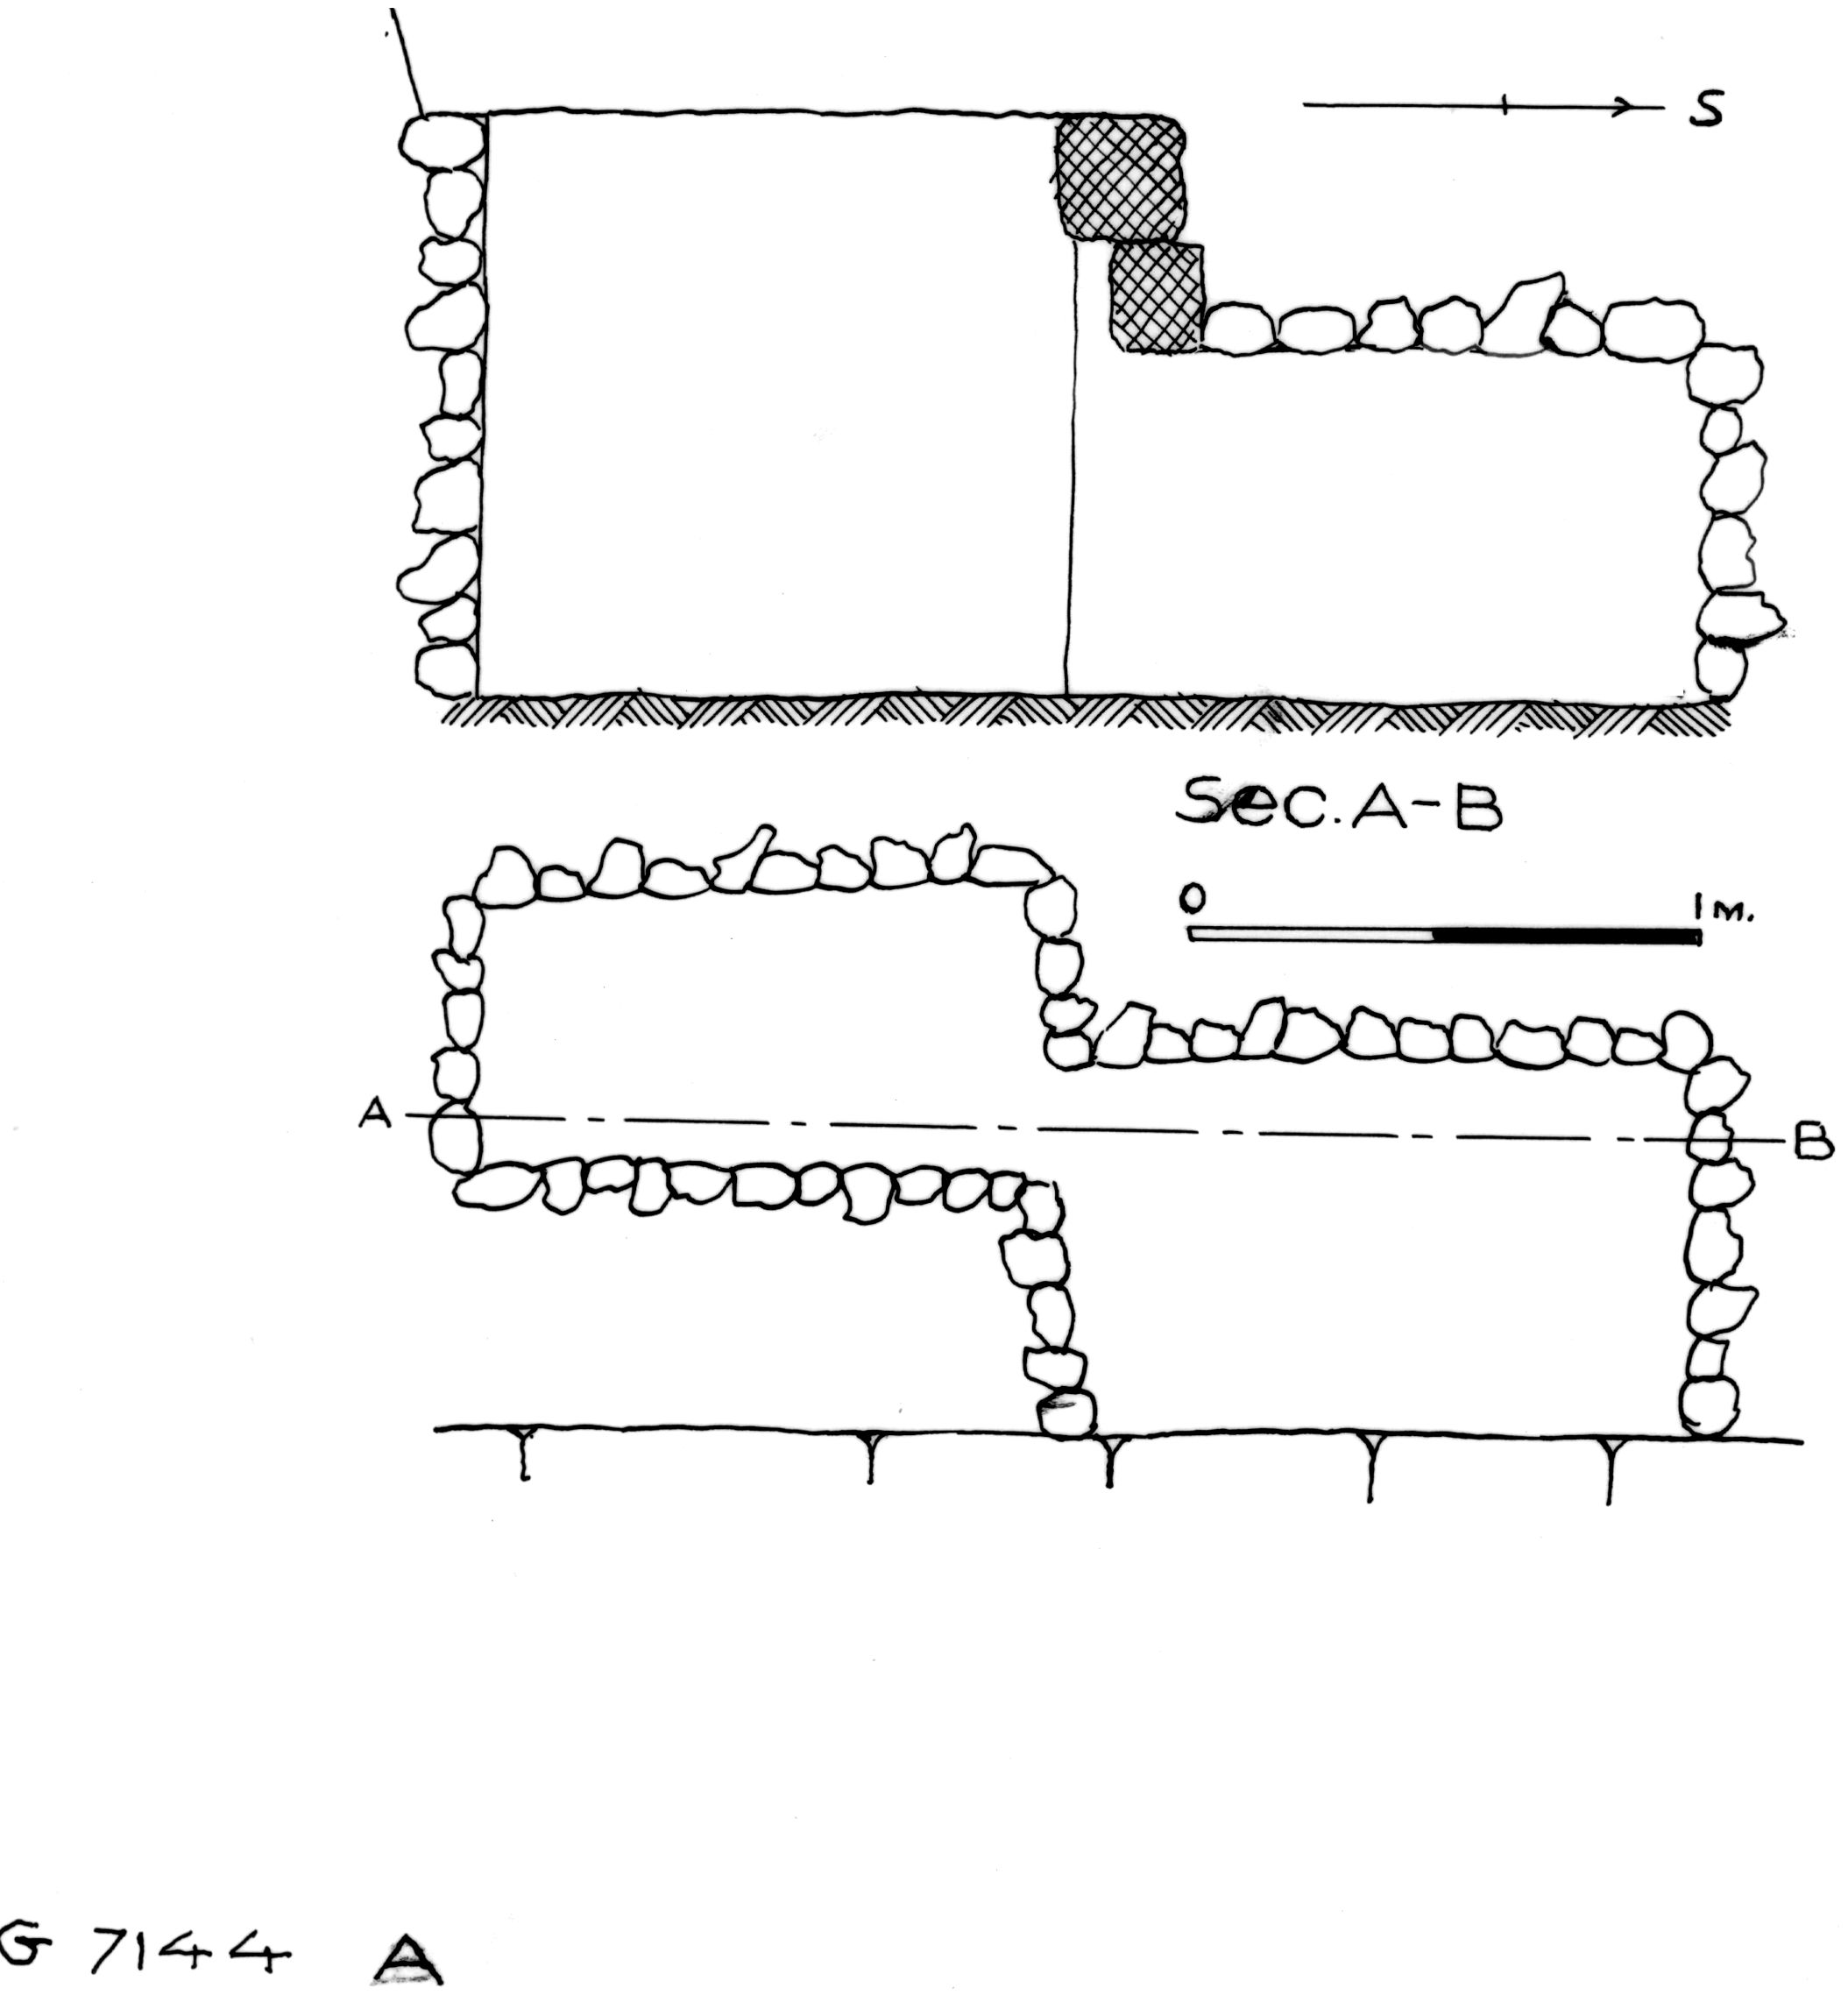 Maps and plans: G 7144, Shaft A